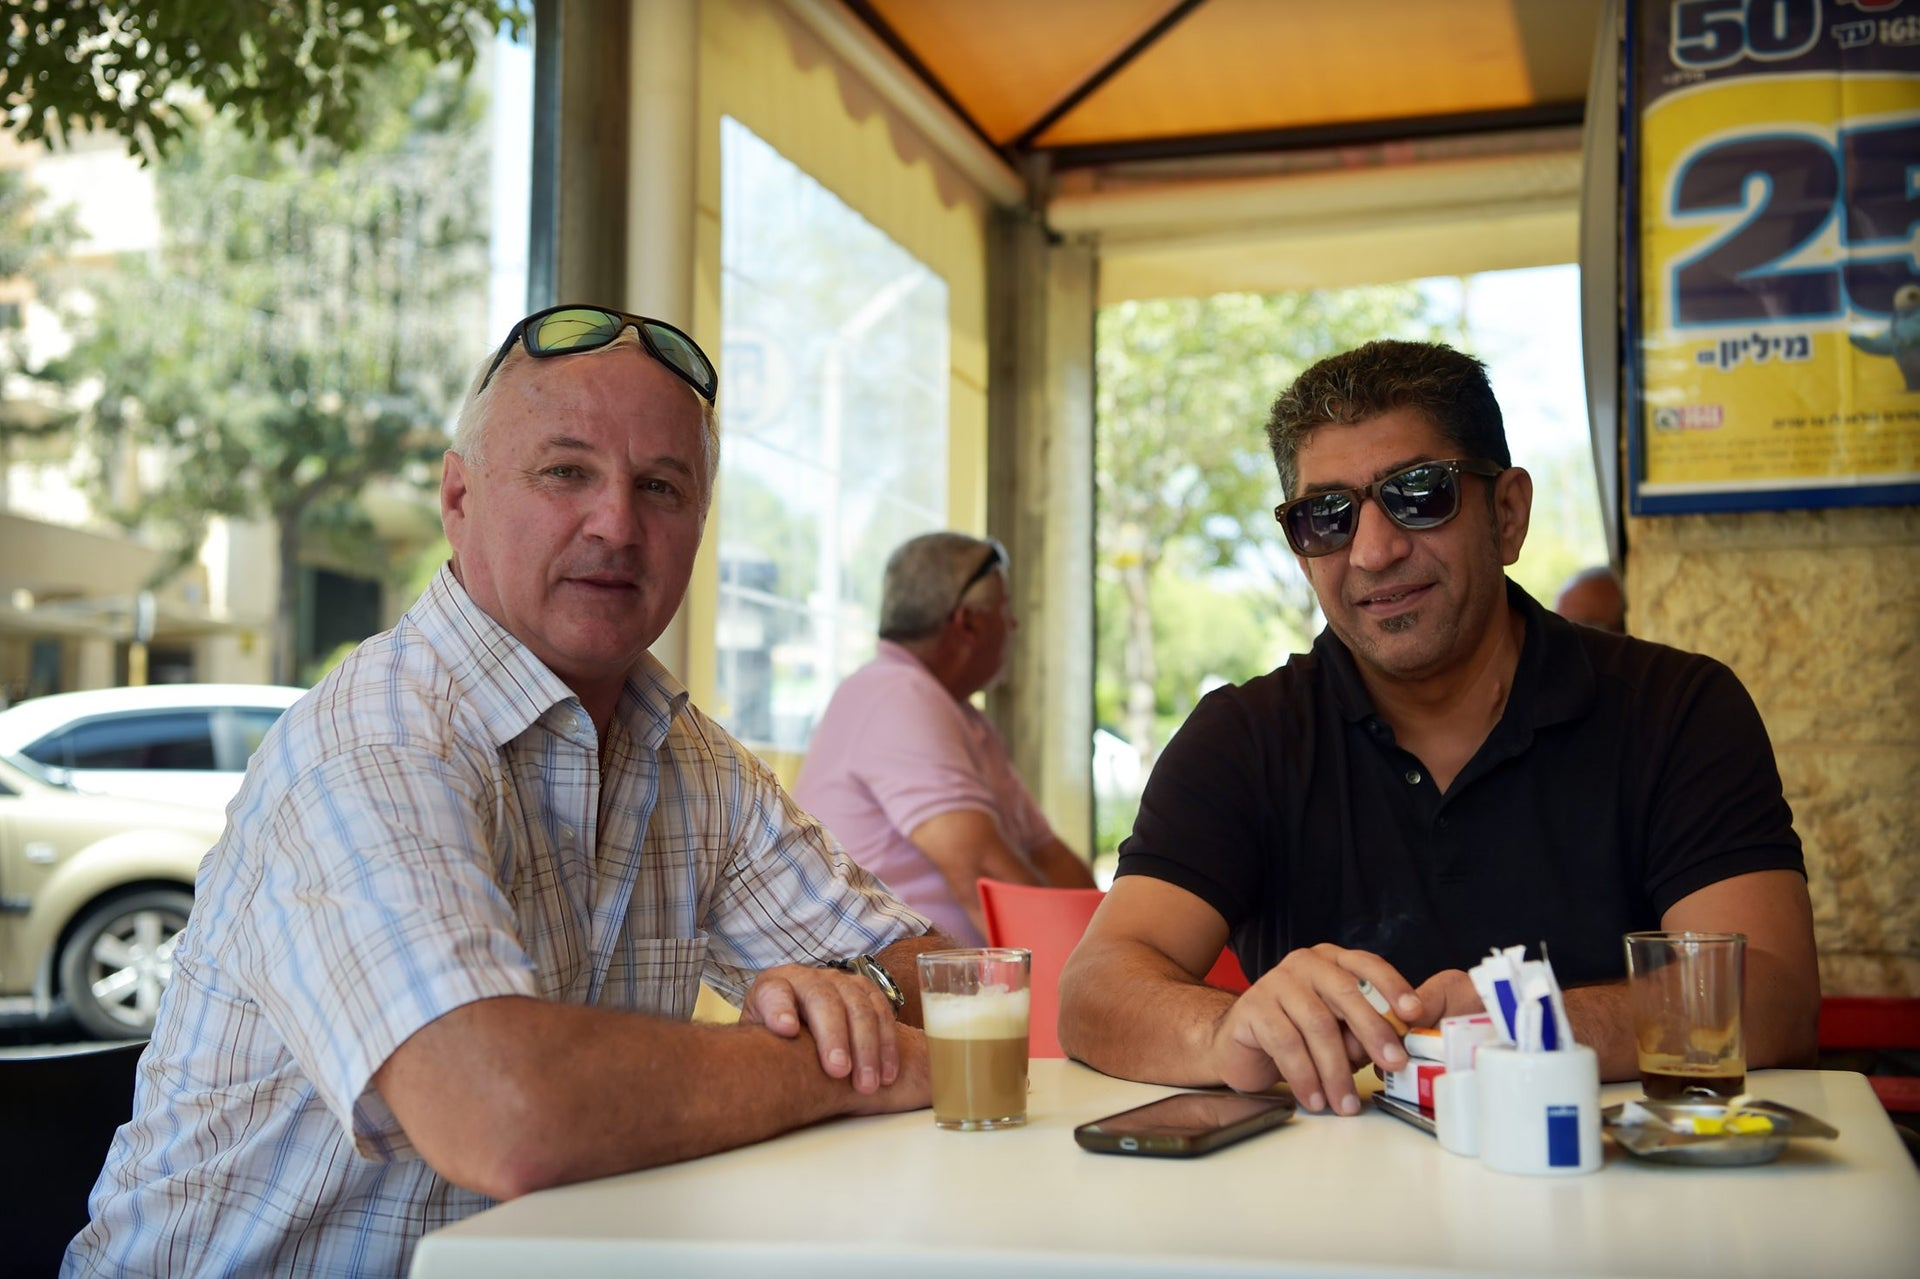 Albert, right, and a friend drinking coffee at a kiosk in Carmiel, northern Israel